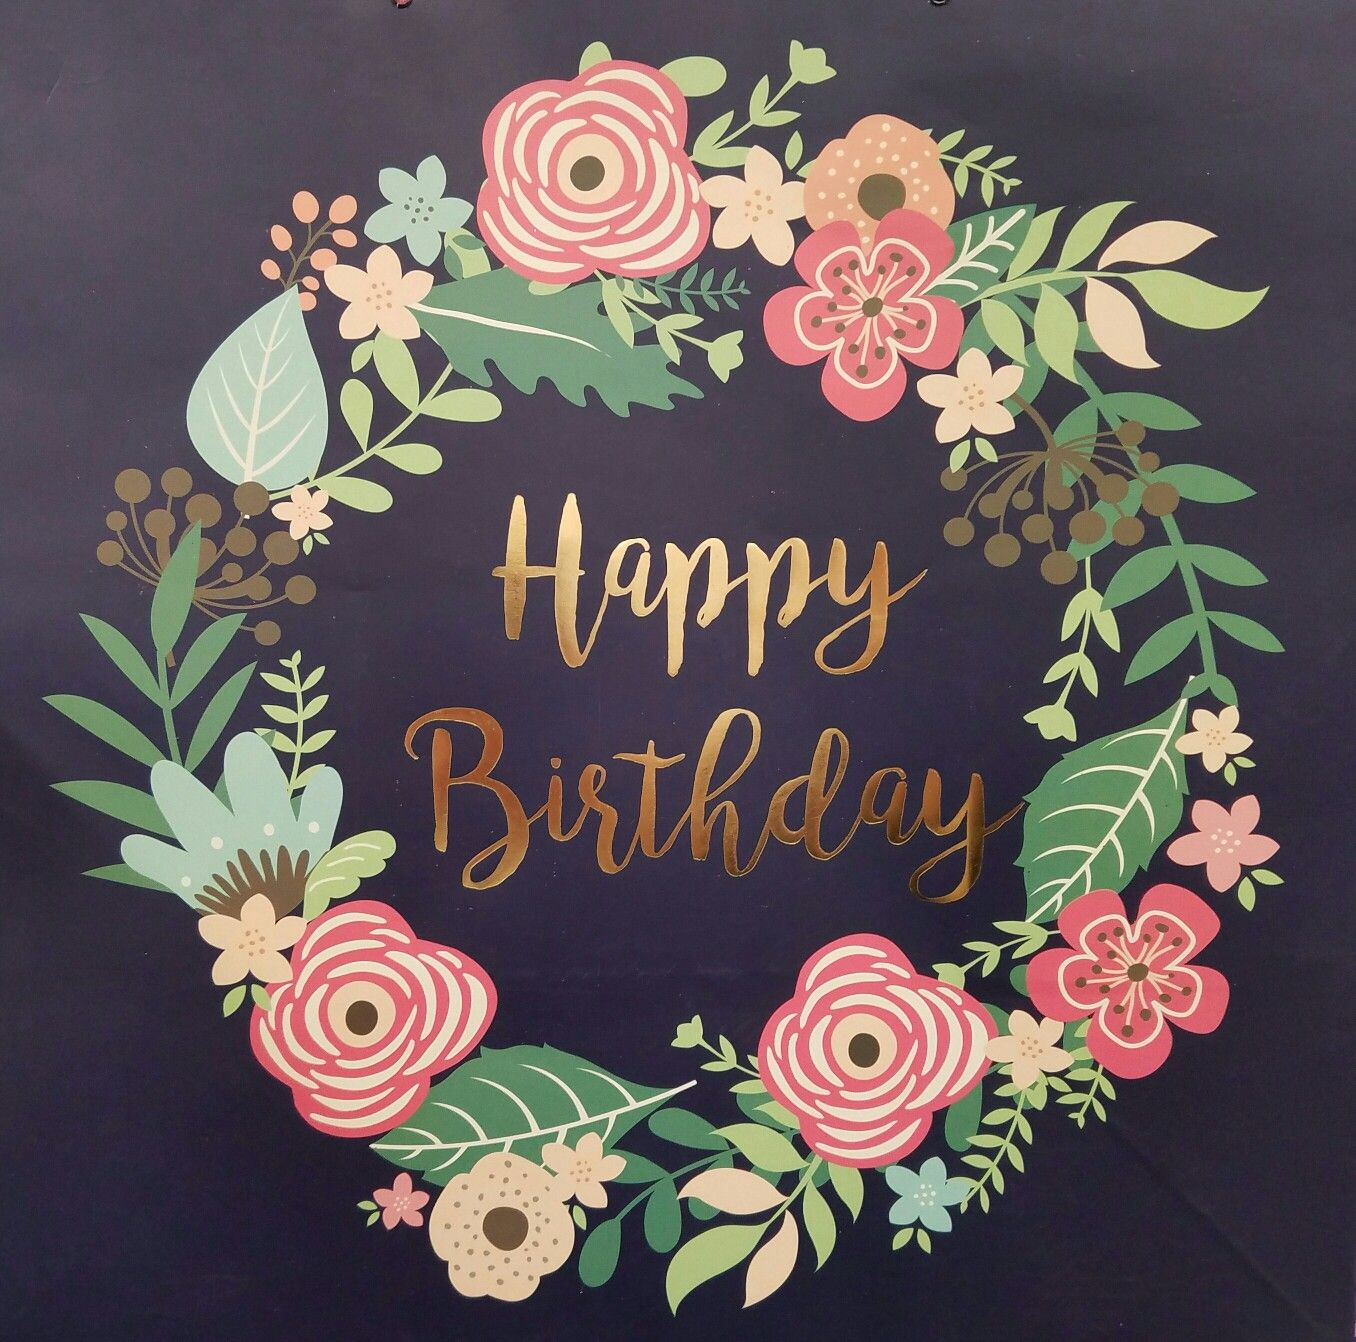 floral happy birthday images ; 296b9d71e59c34be5ad0125a69b92aef